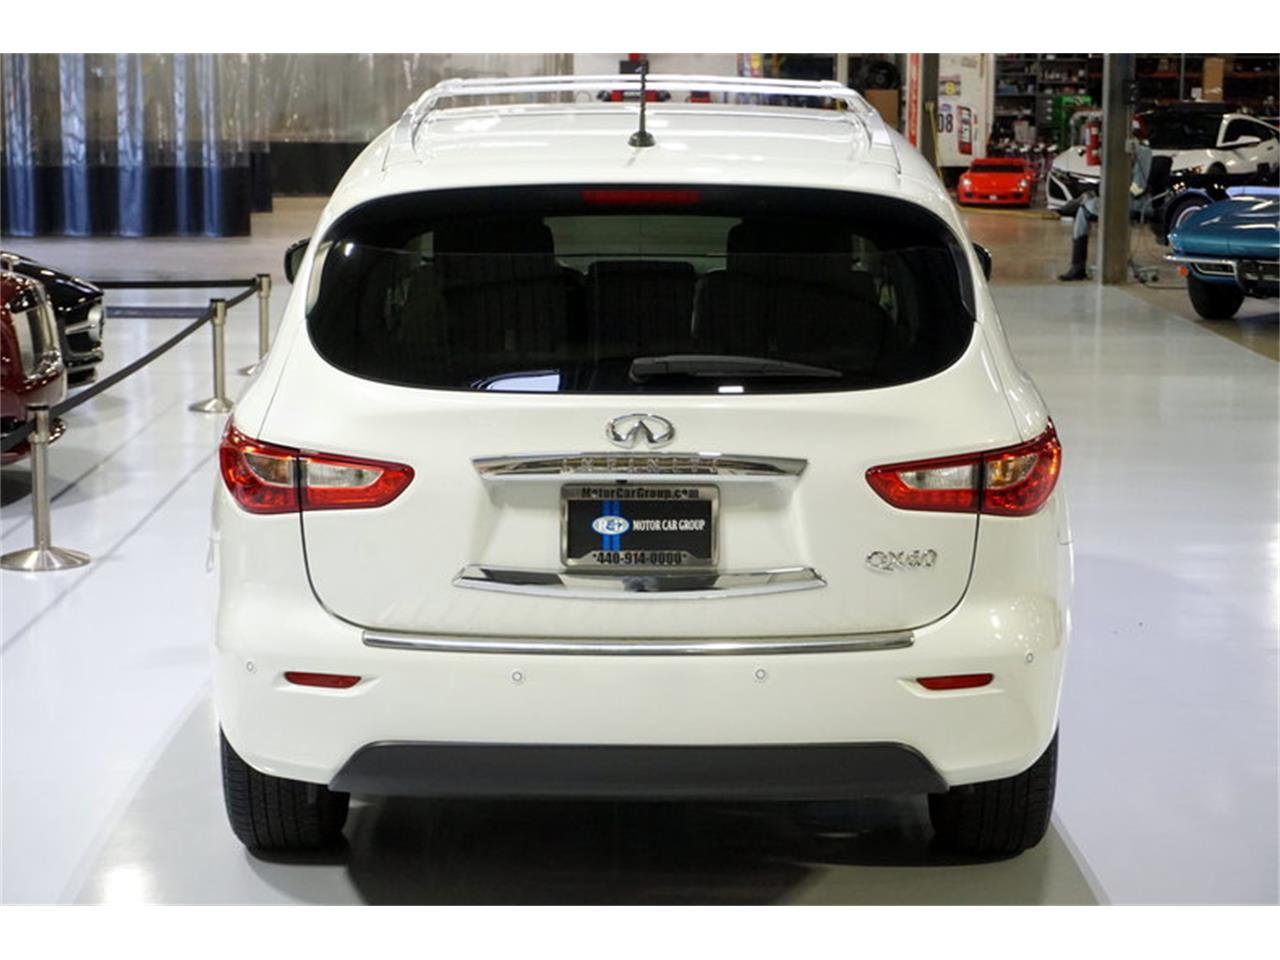 Large Picture of '14 Infiniti QX60 located in Ohio - $28,990.00 - MD5Q